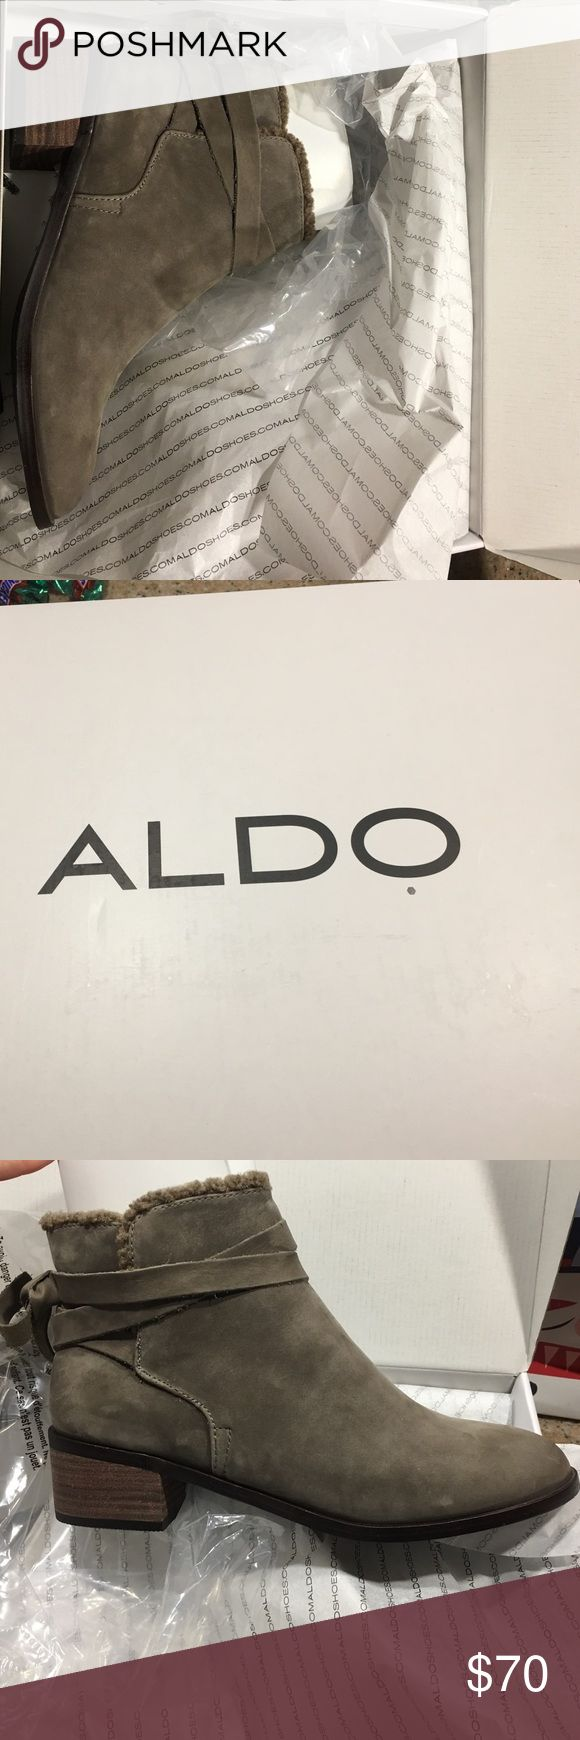 Aldo Boots. Brand new in box. Brand new Aldo boots. Size 8. They have never been worn. Still in wrapping in box. Aldo Shoes Ankle Boots & Booties